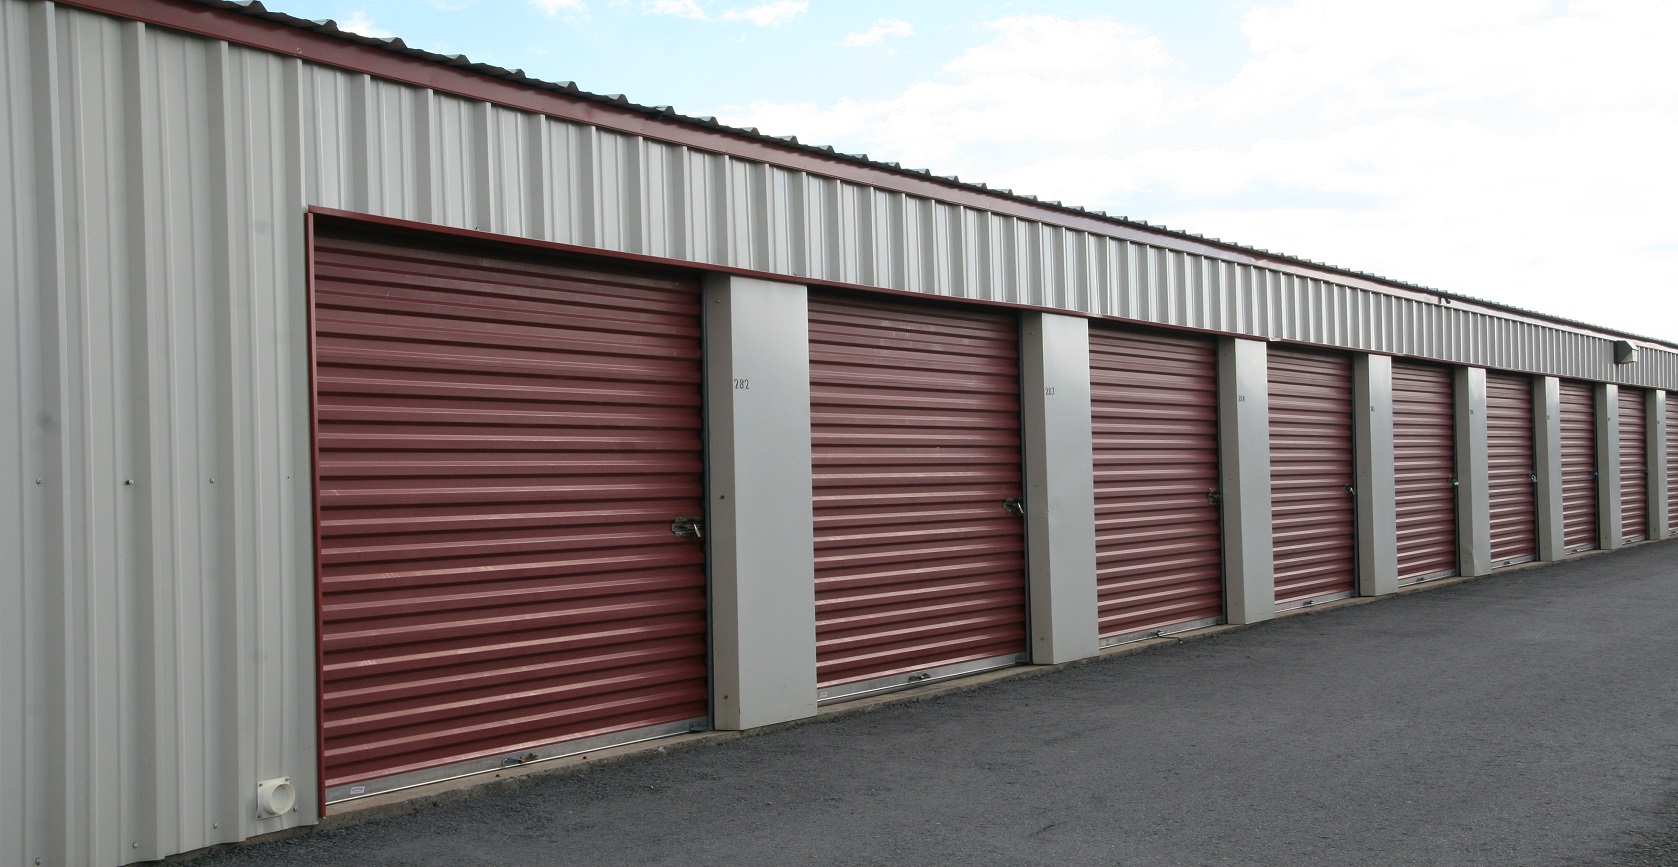 Storage facilities for sale best storage design 2017 for Outdoor storage units for sale